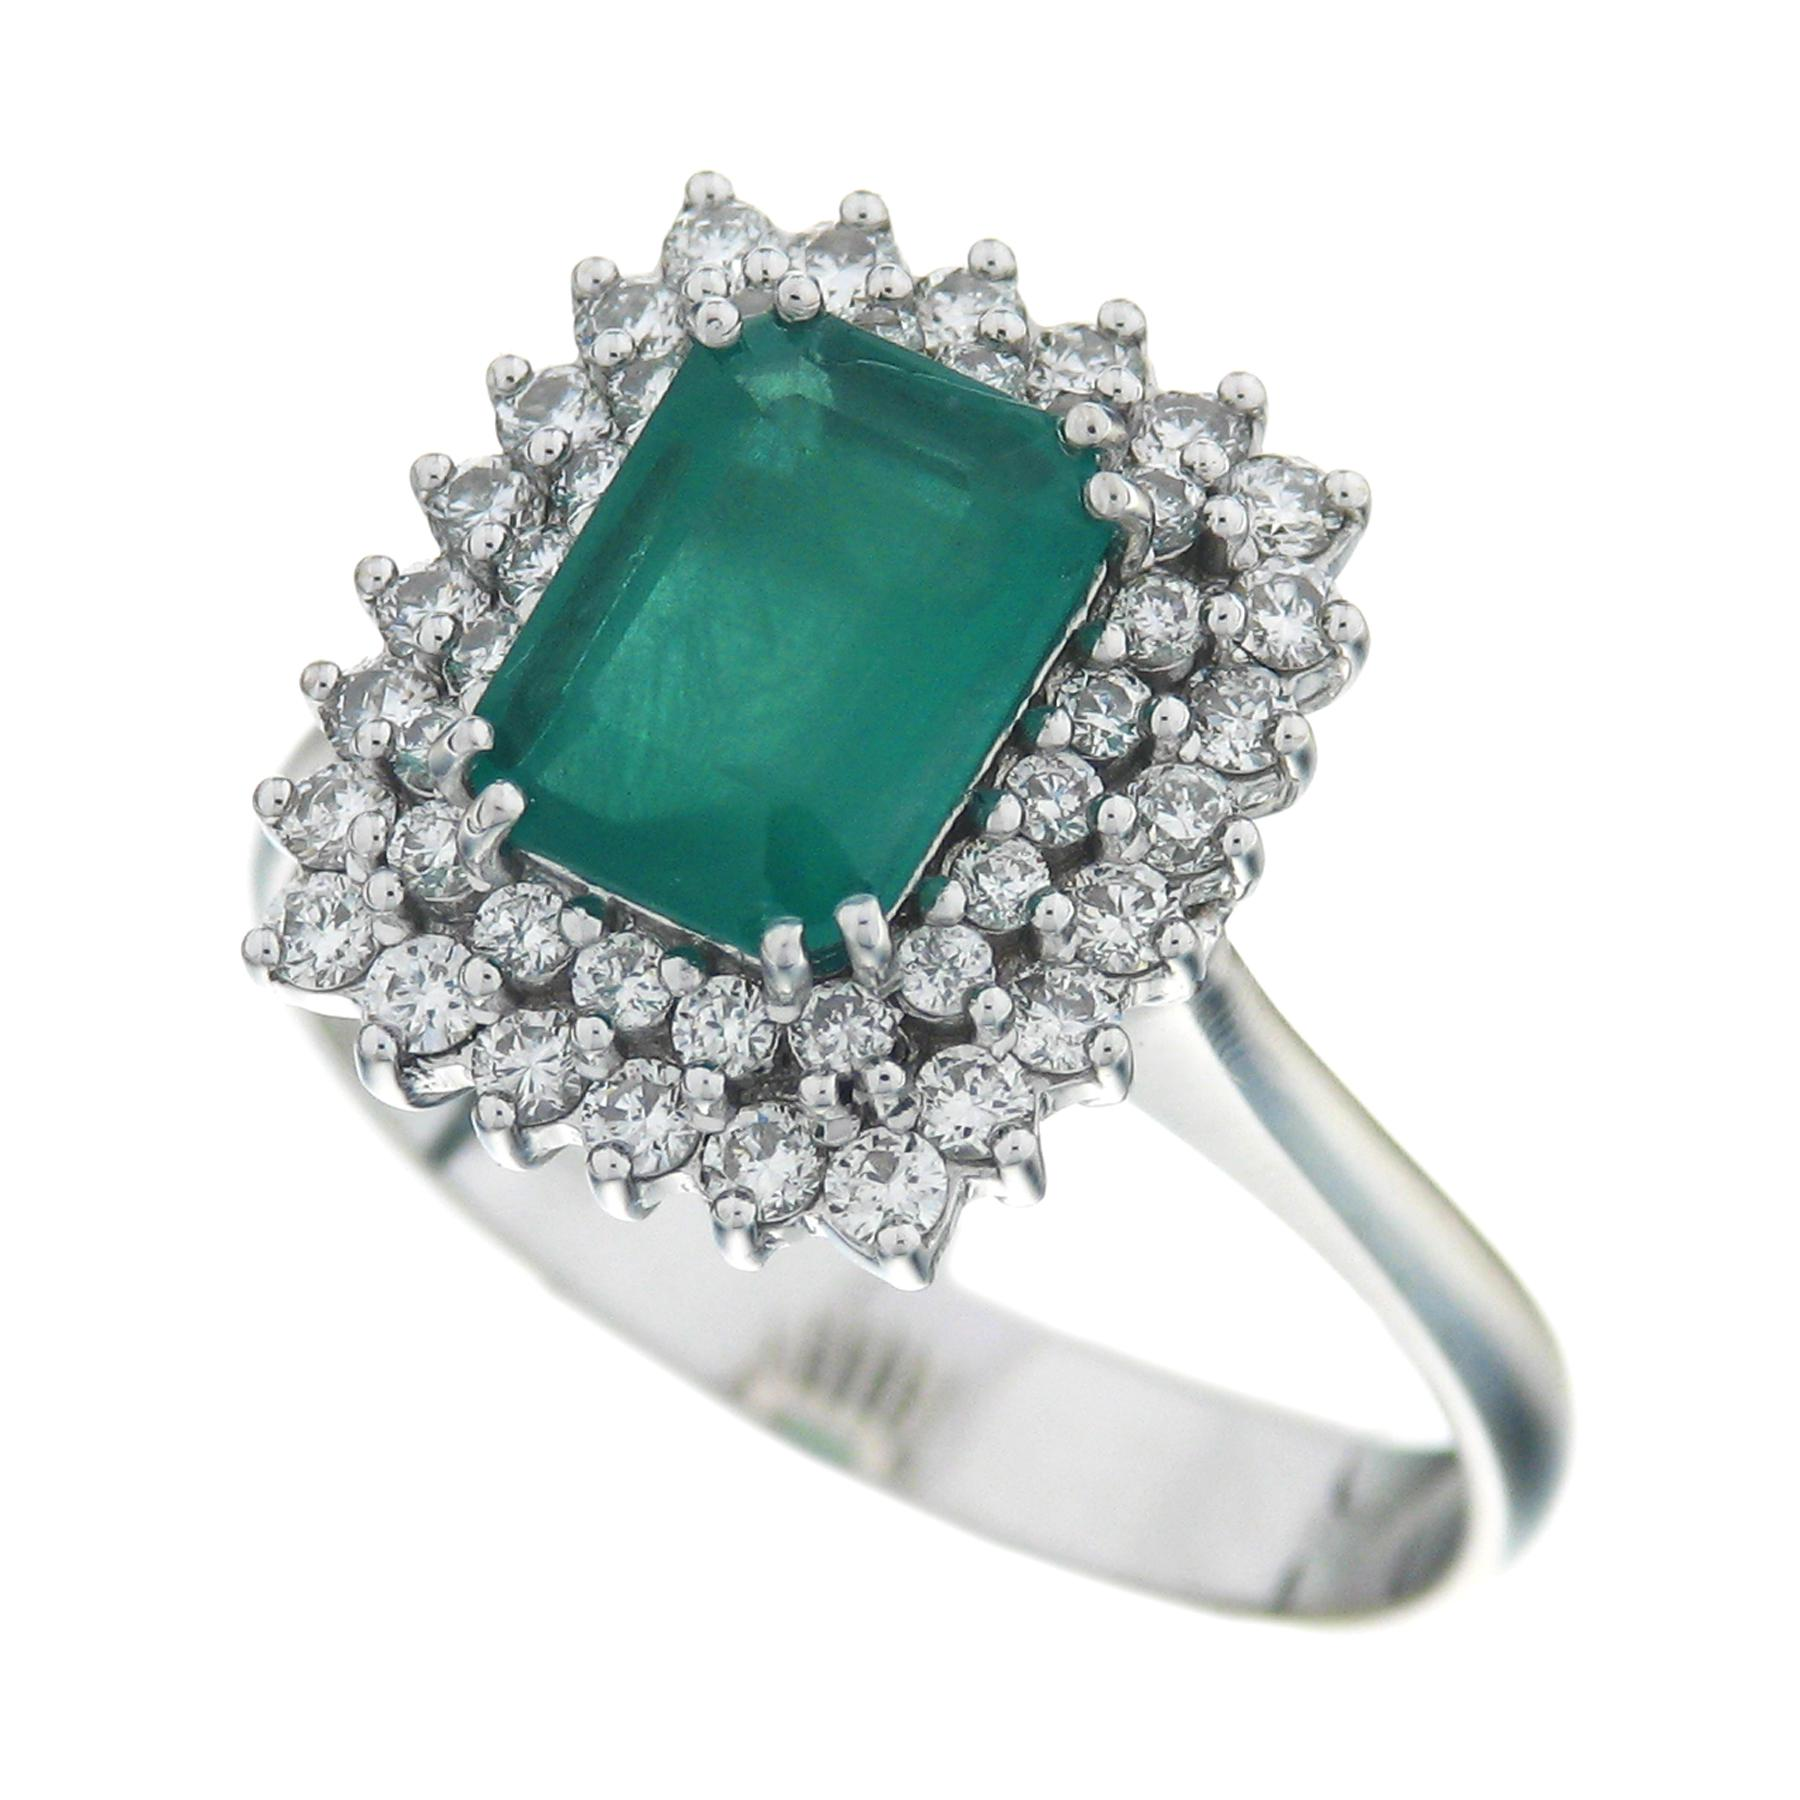 Gival 18ct White Gold Diamond & Emerald Ring 3943